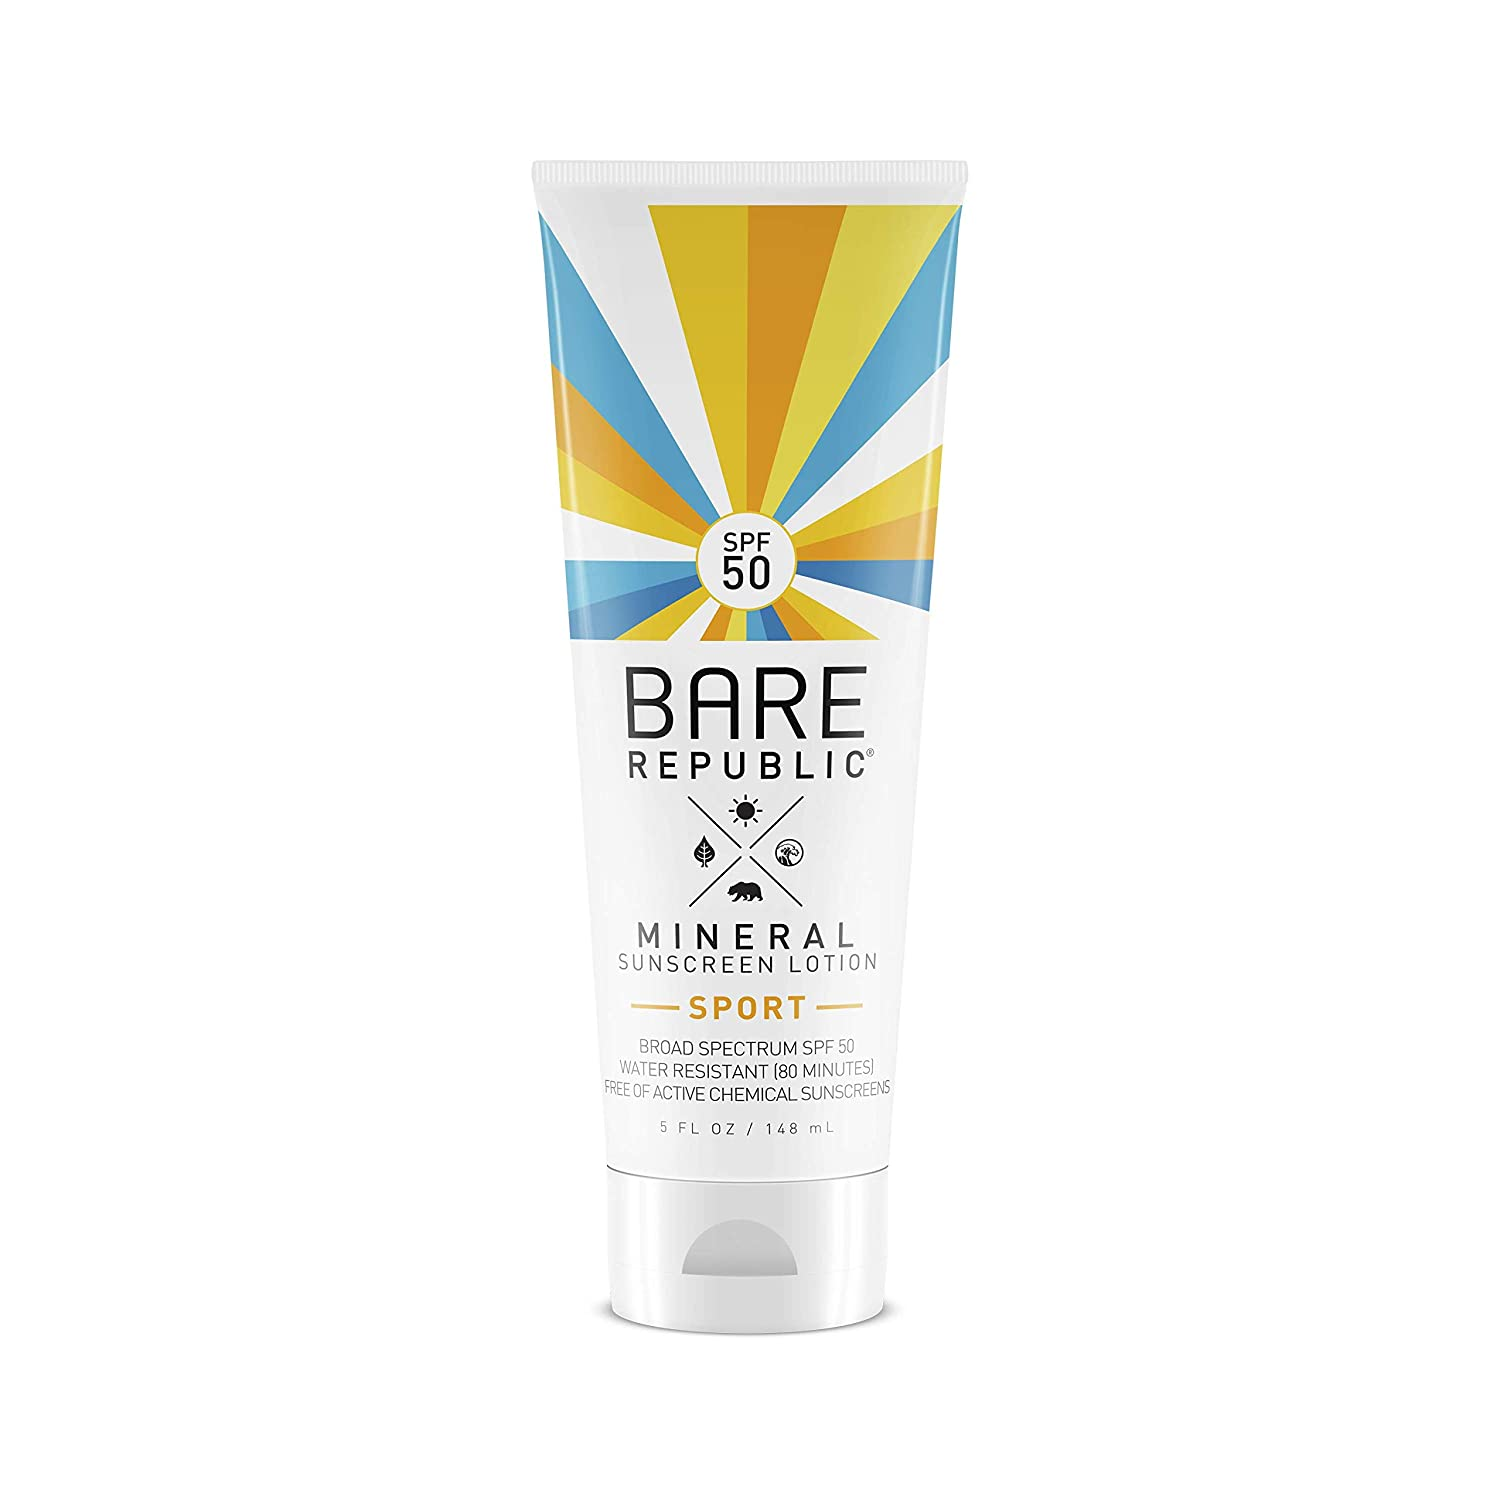 Bare Republic - Mineral Sport Sunscreen Lotion Broad Spectrum Coconut Vanilla 50 SPF - 5 fl. oz. COOLA Suncare